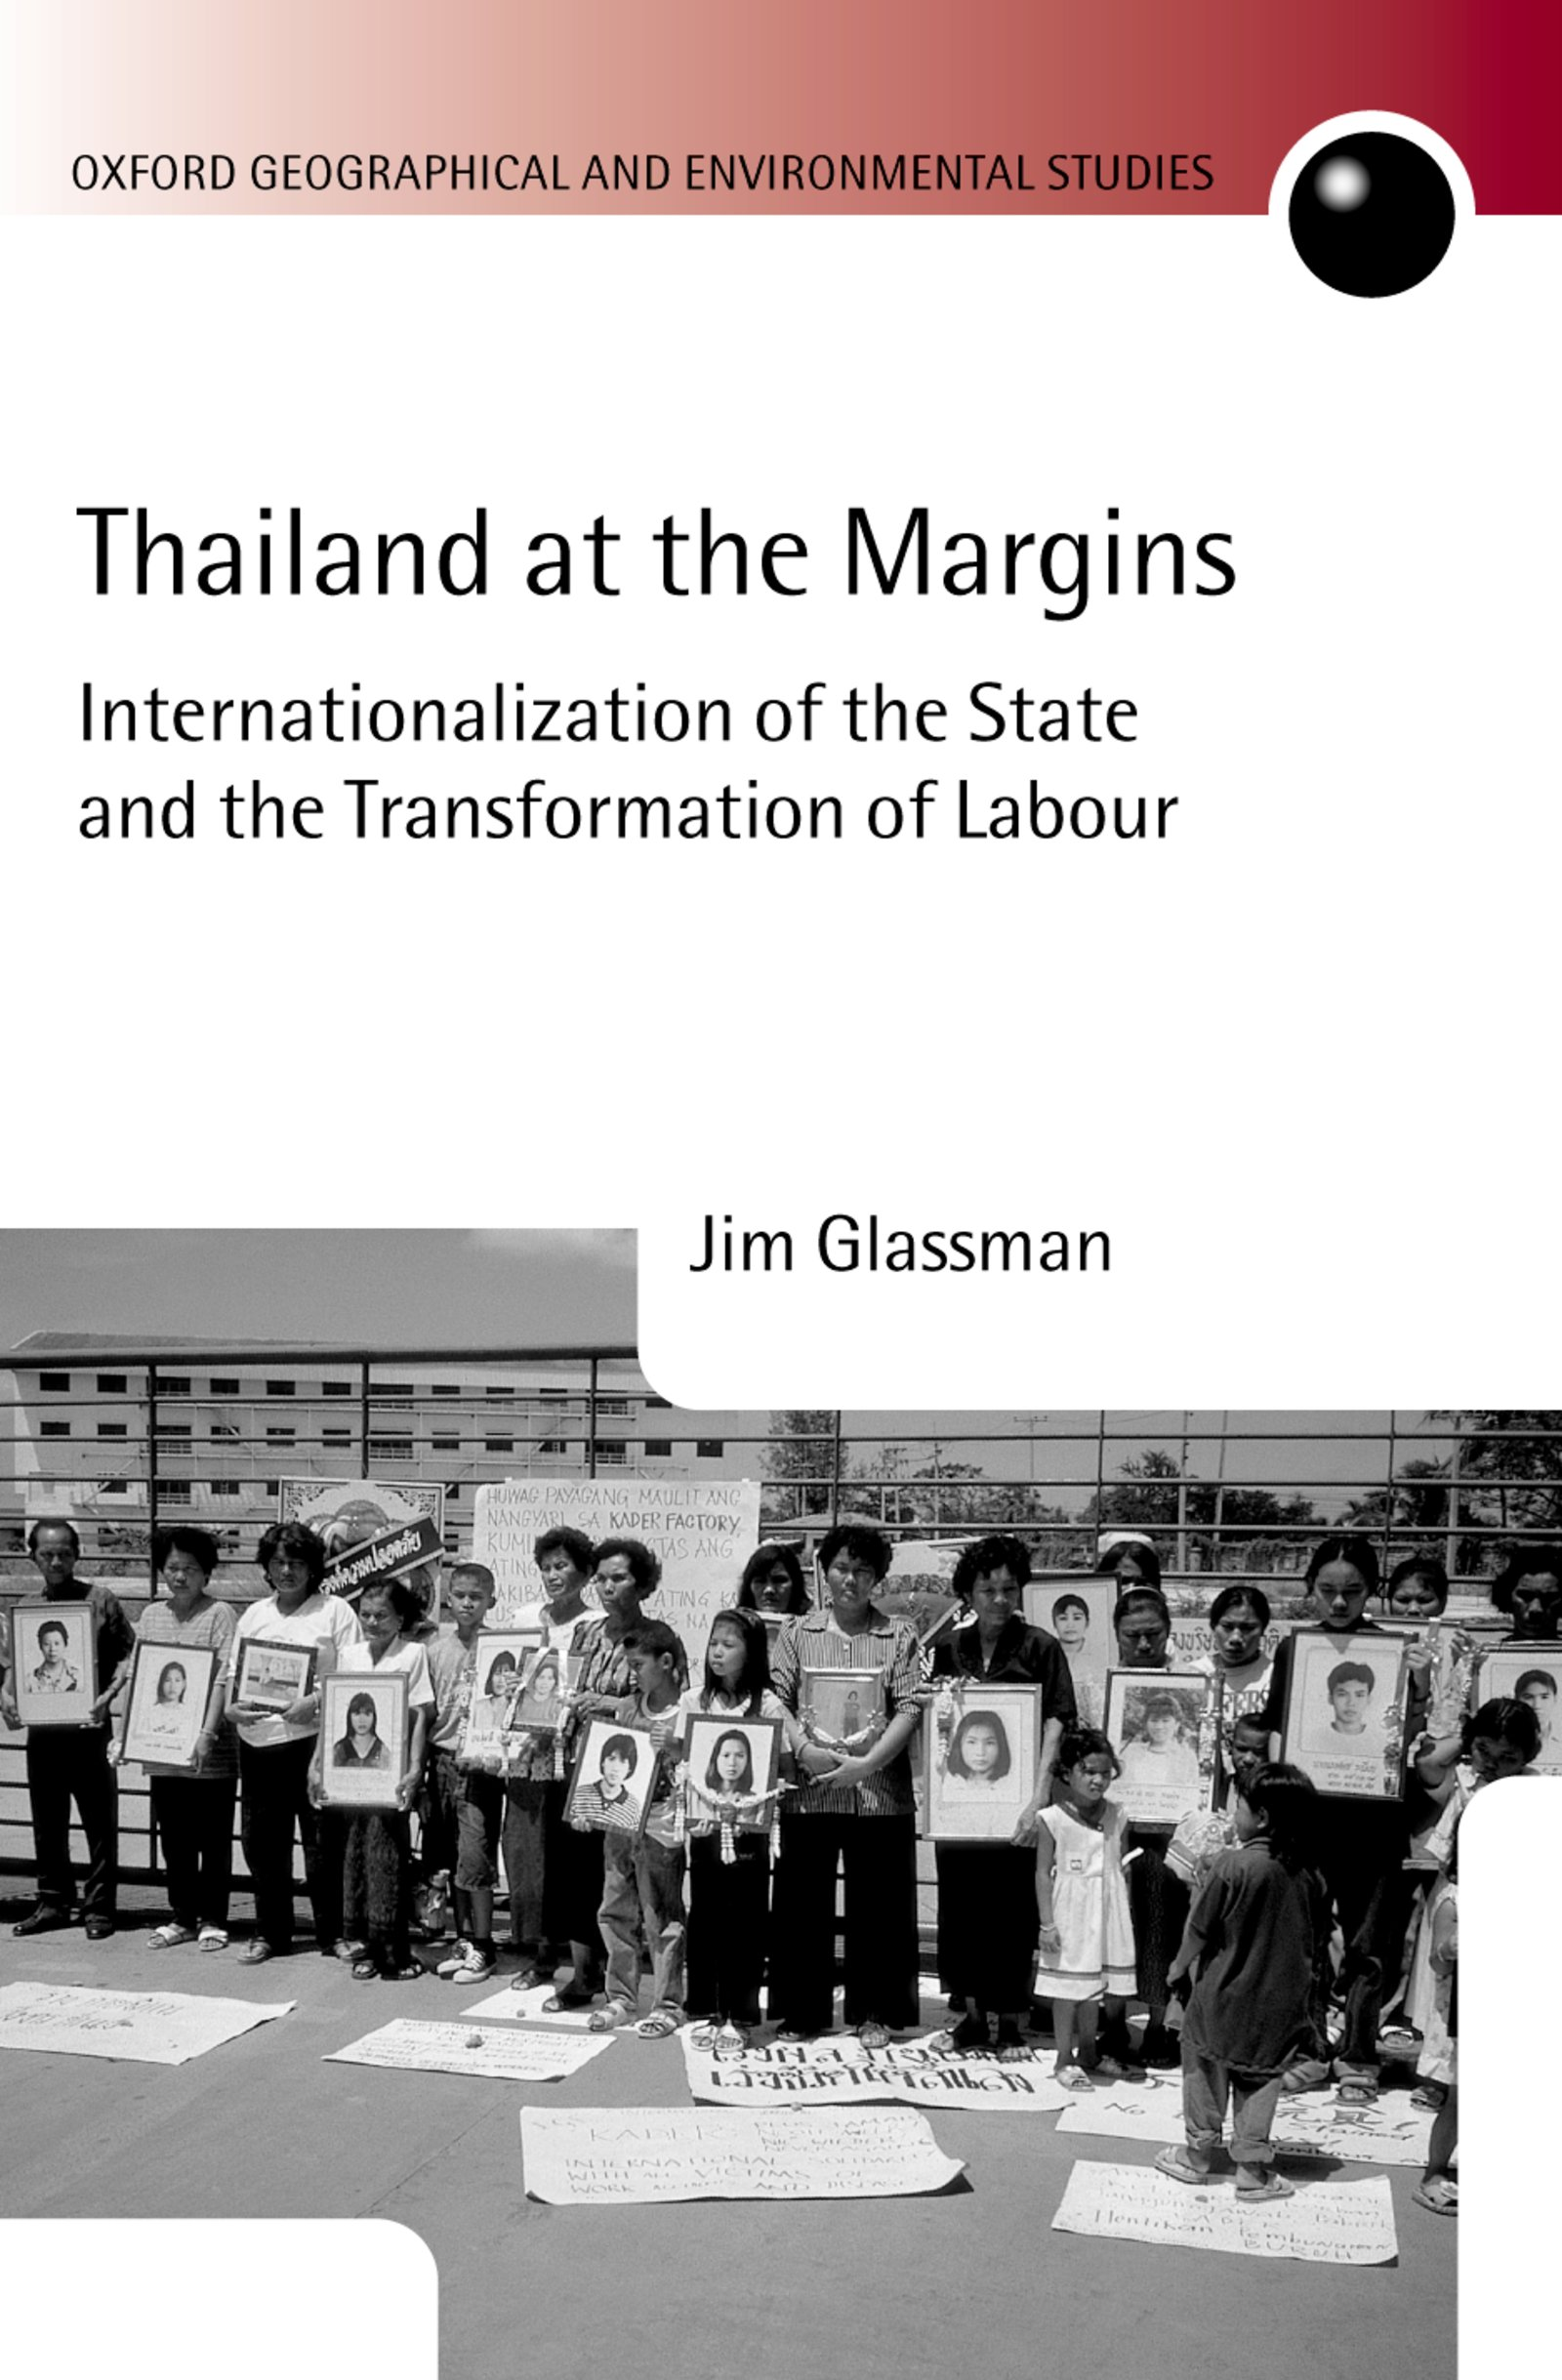 Thailand at the MarginsInternationalization of the State and the Transformation of Labour